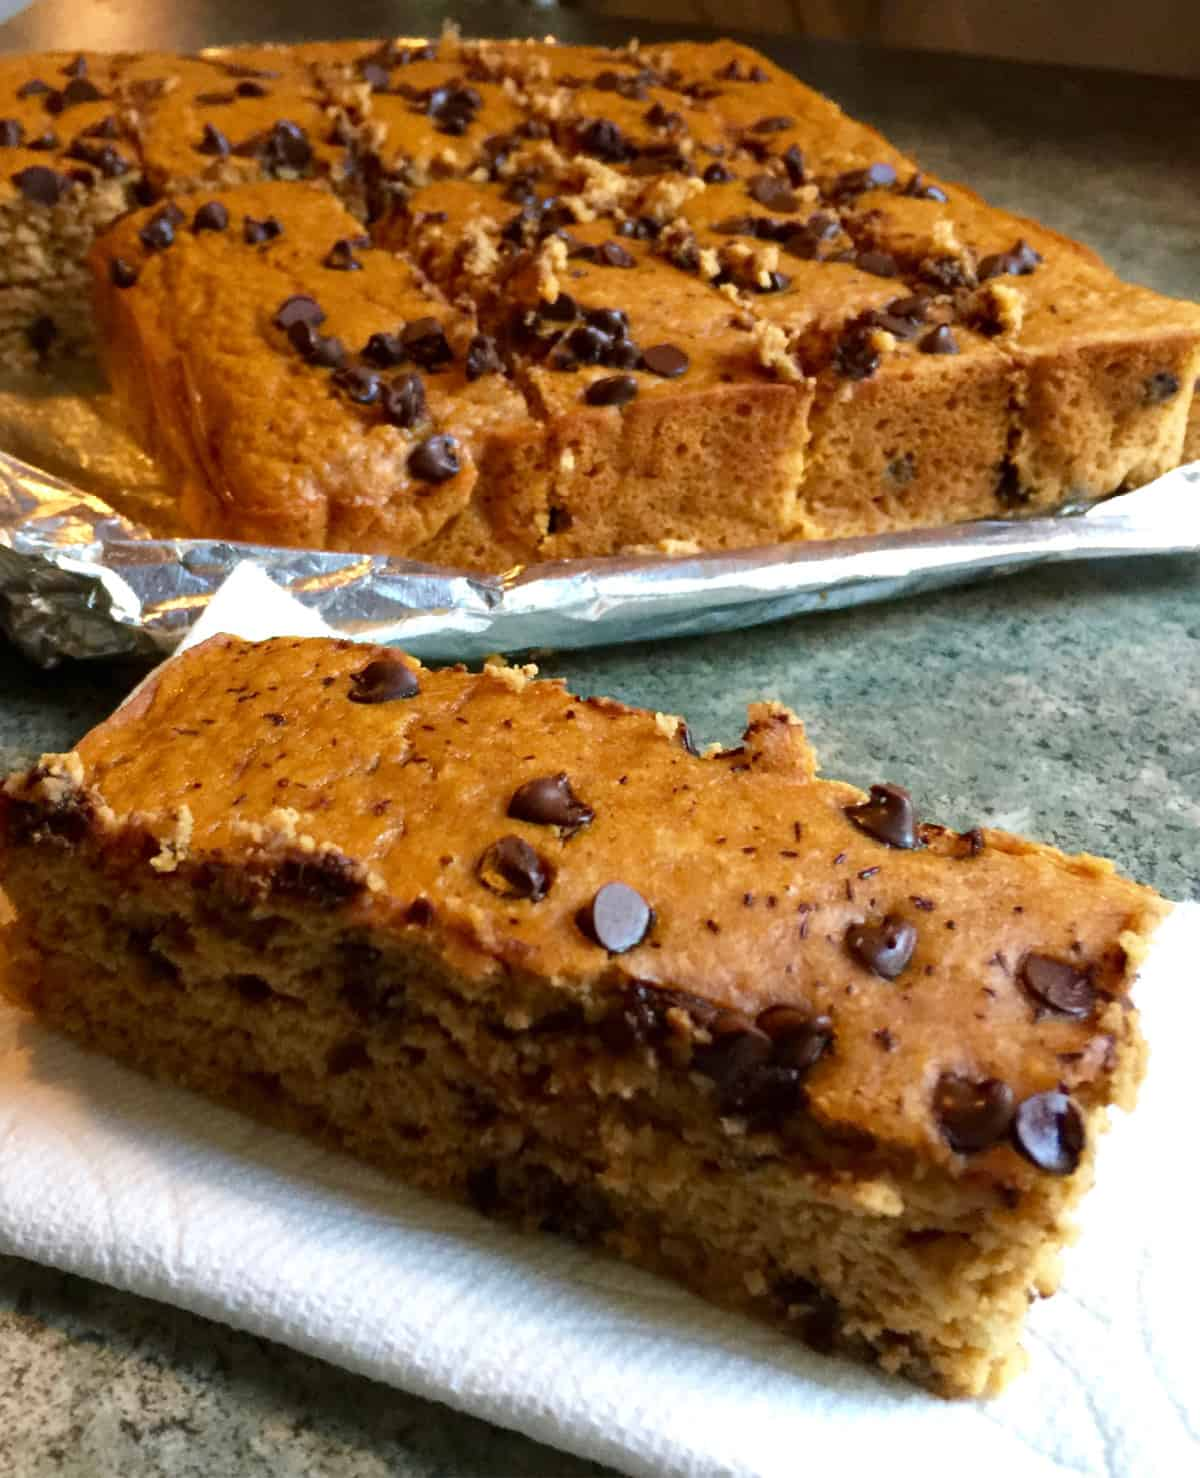 Pumpkin Chocolate Chip Blondie sitting in napkin in front of pan of blondies.